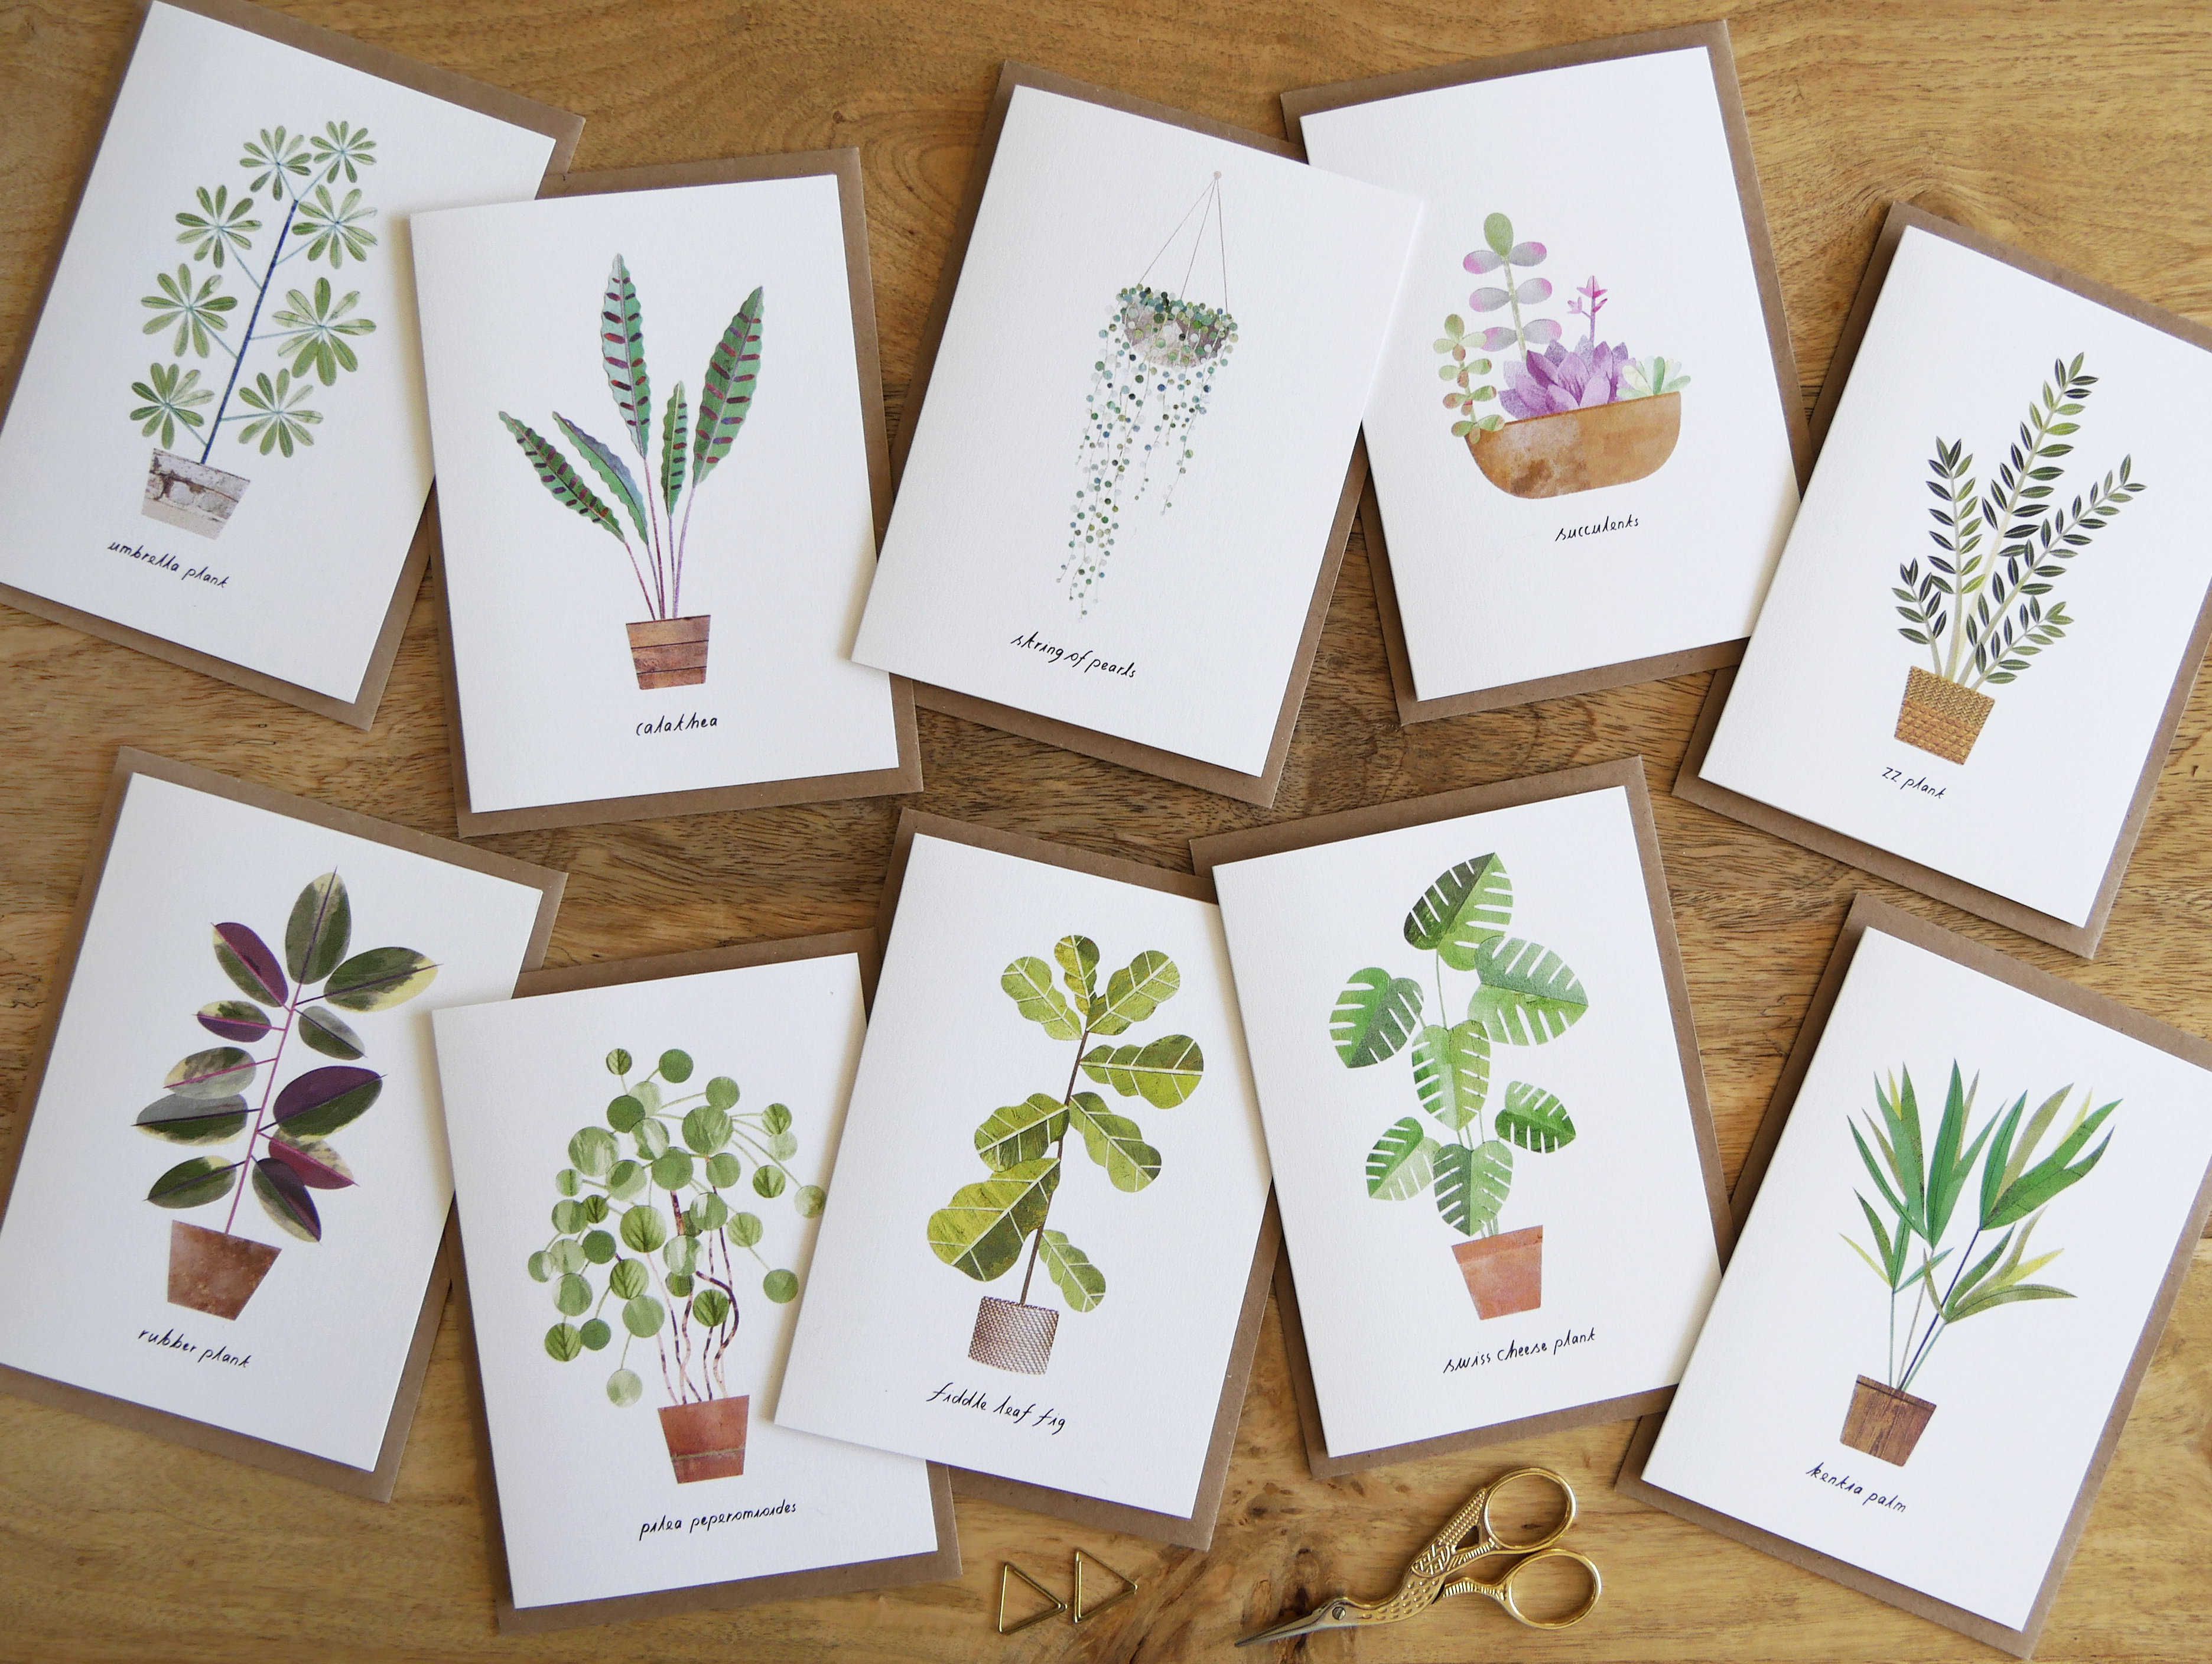 Above: Some designs in Paperwhale's Botanics card collection.